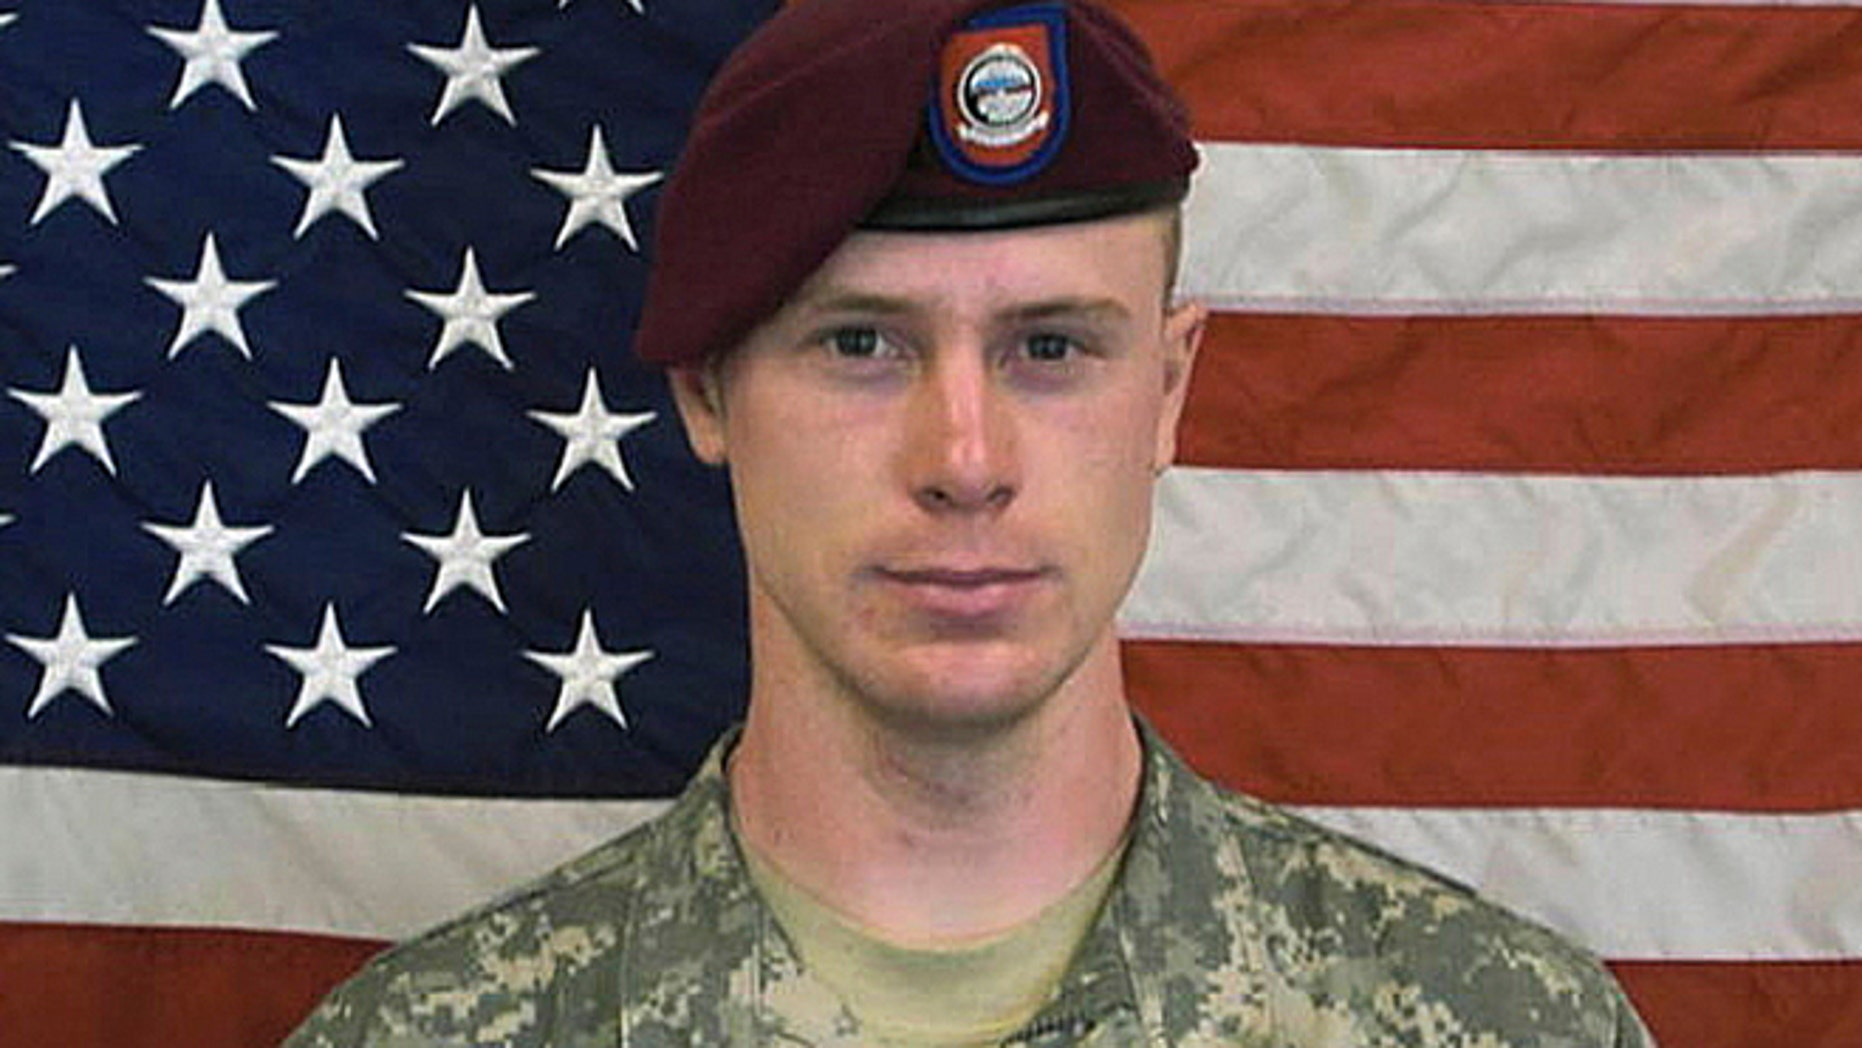 This undated file image provided by the U.S. Army shows Sgt. Bowe Bergdahl.